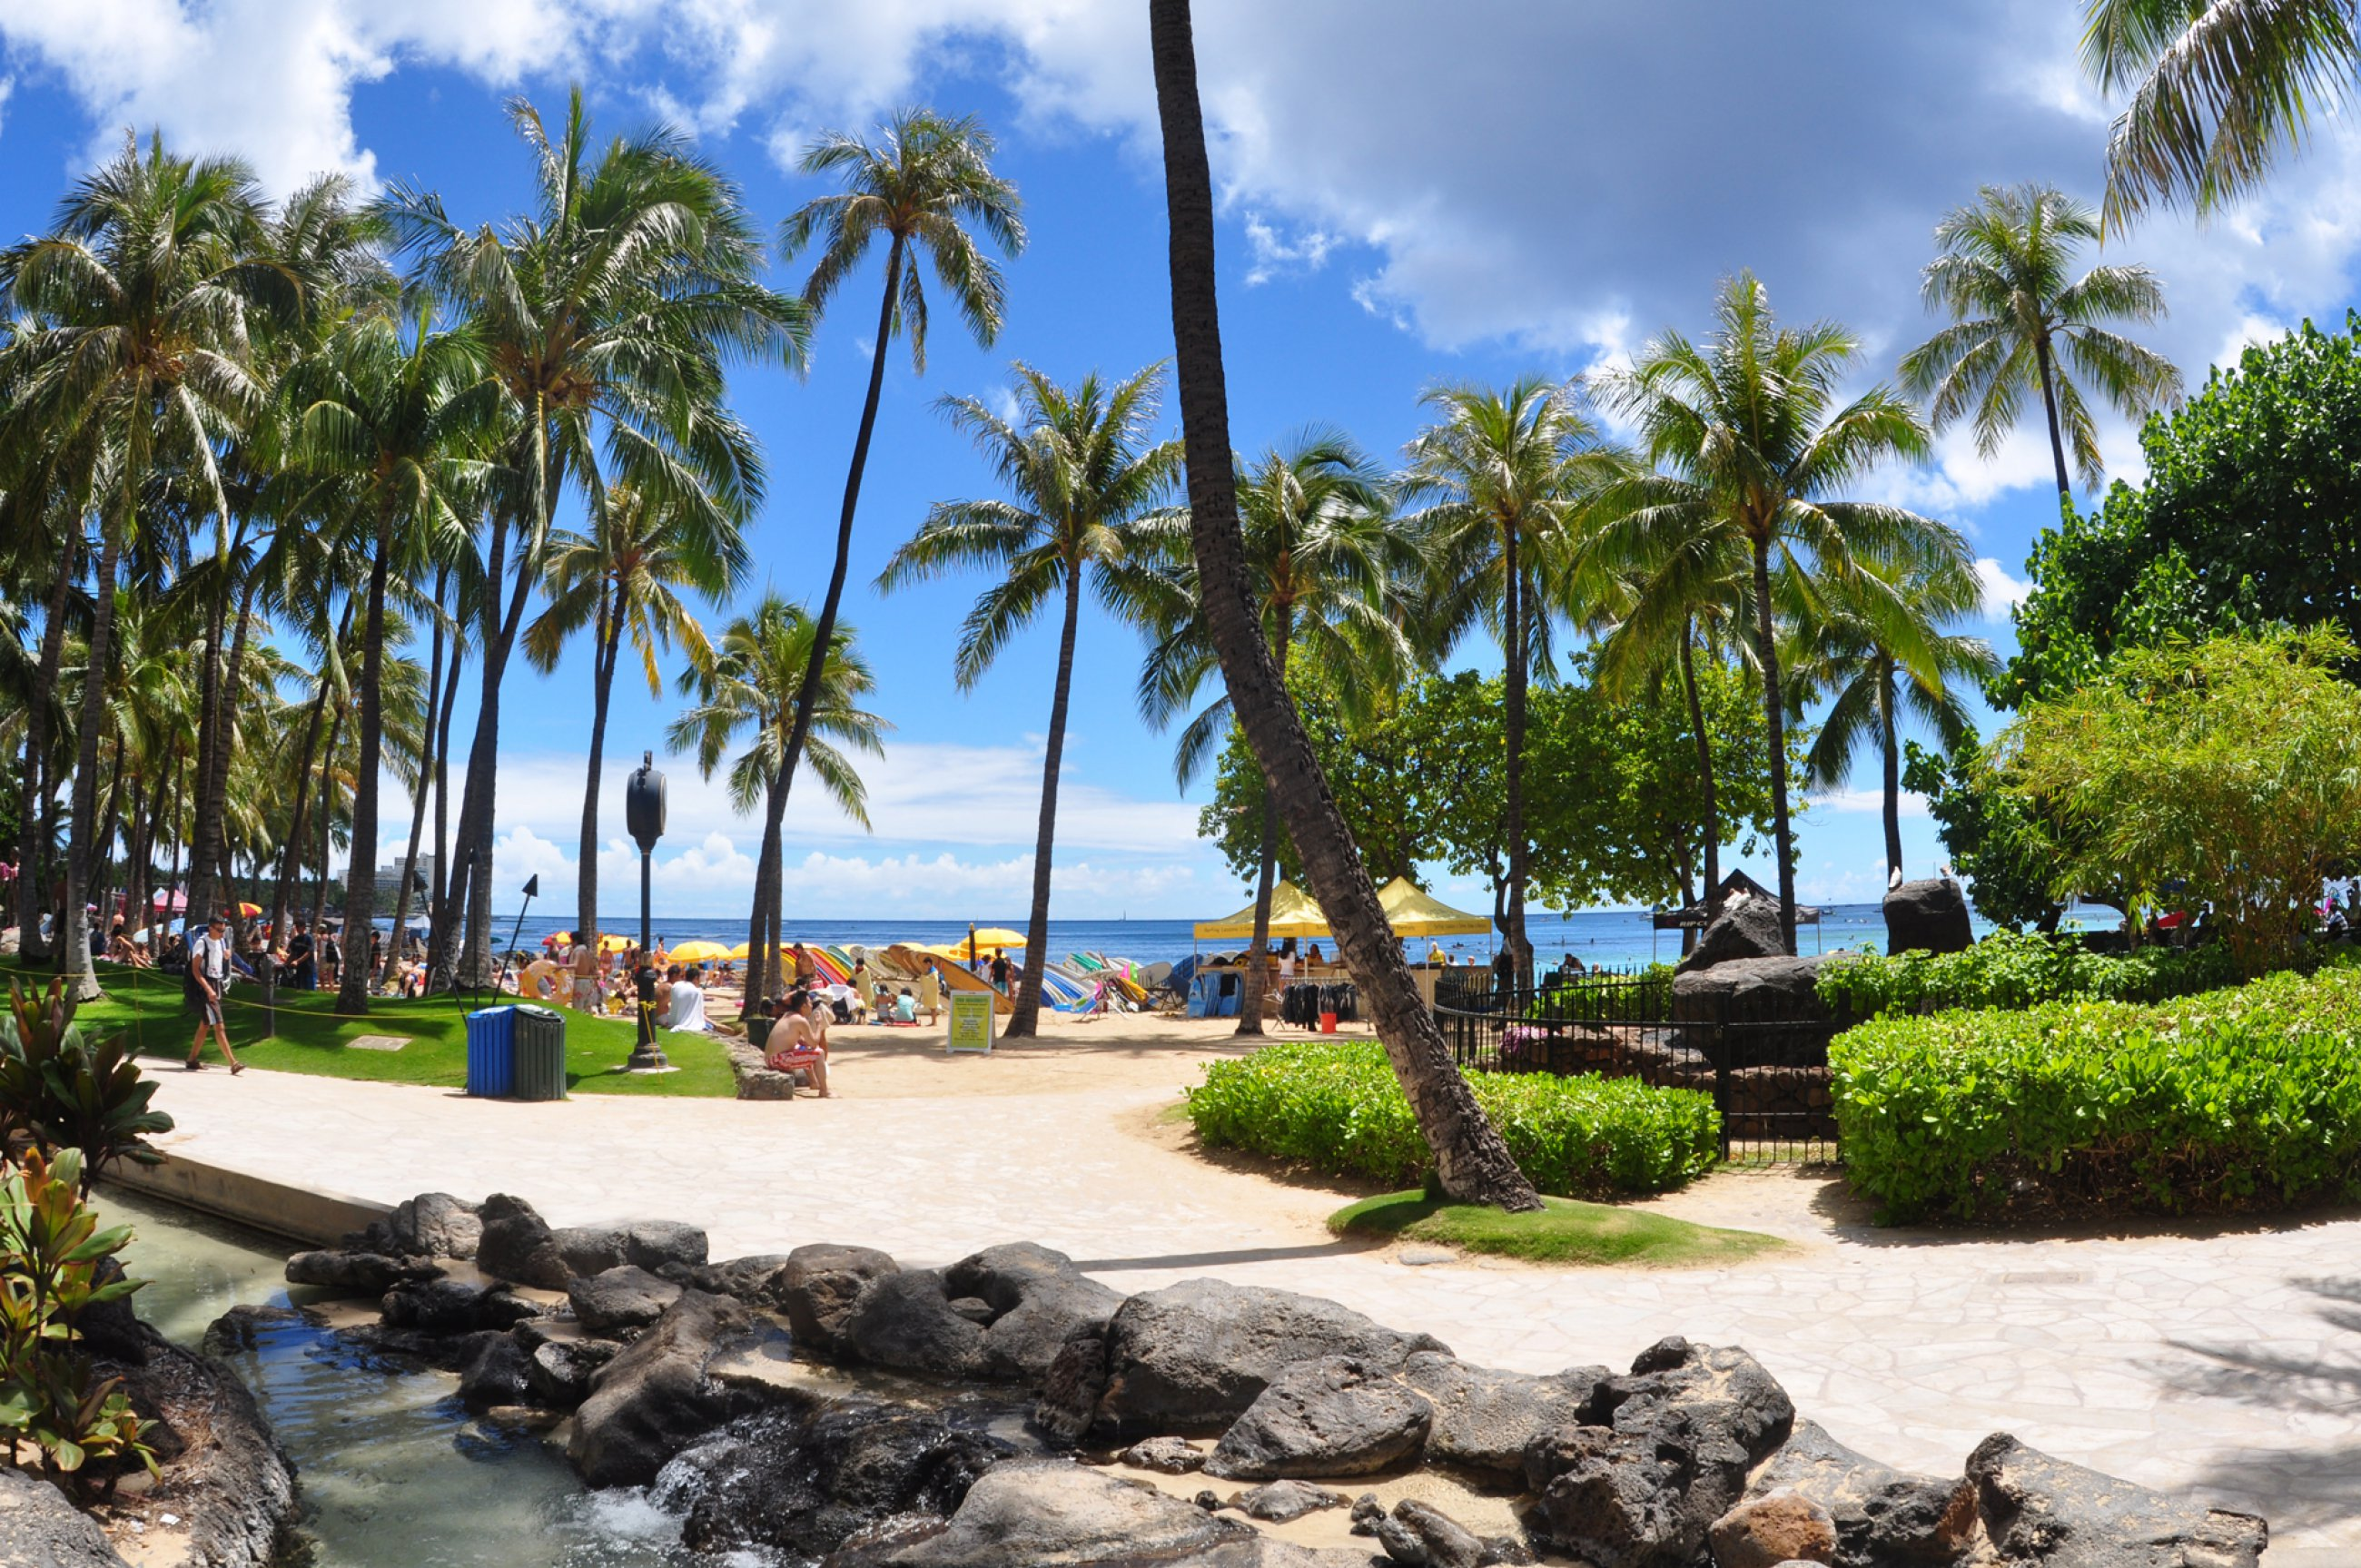 https://bubo.sk/uploads/galleries/3469/havaj-hilton-hawaiian-village-boardwalk-2-oahu-hawaii-photo-d-ramey-logan.jpg